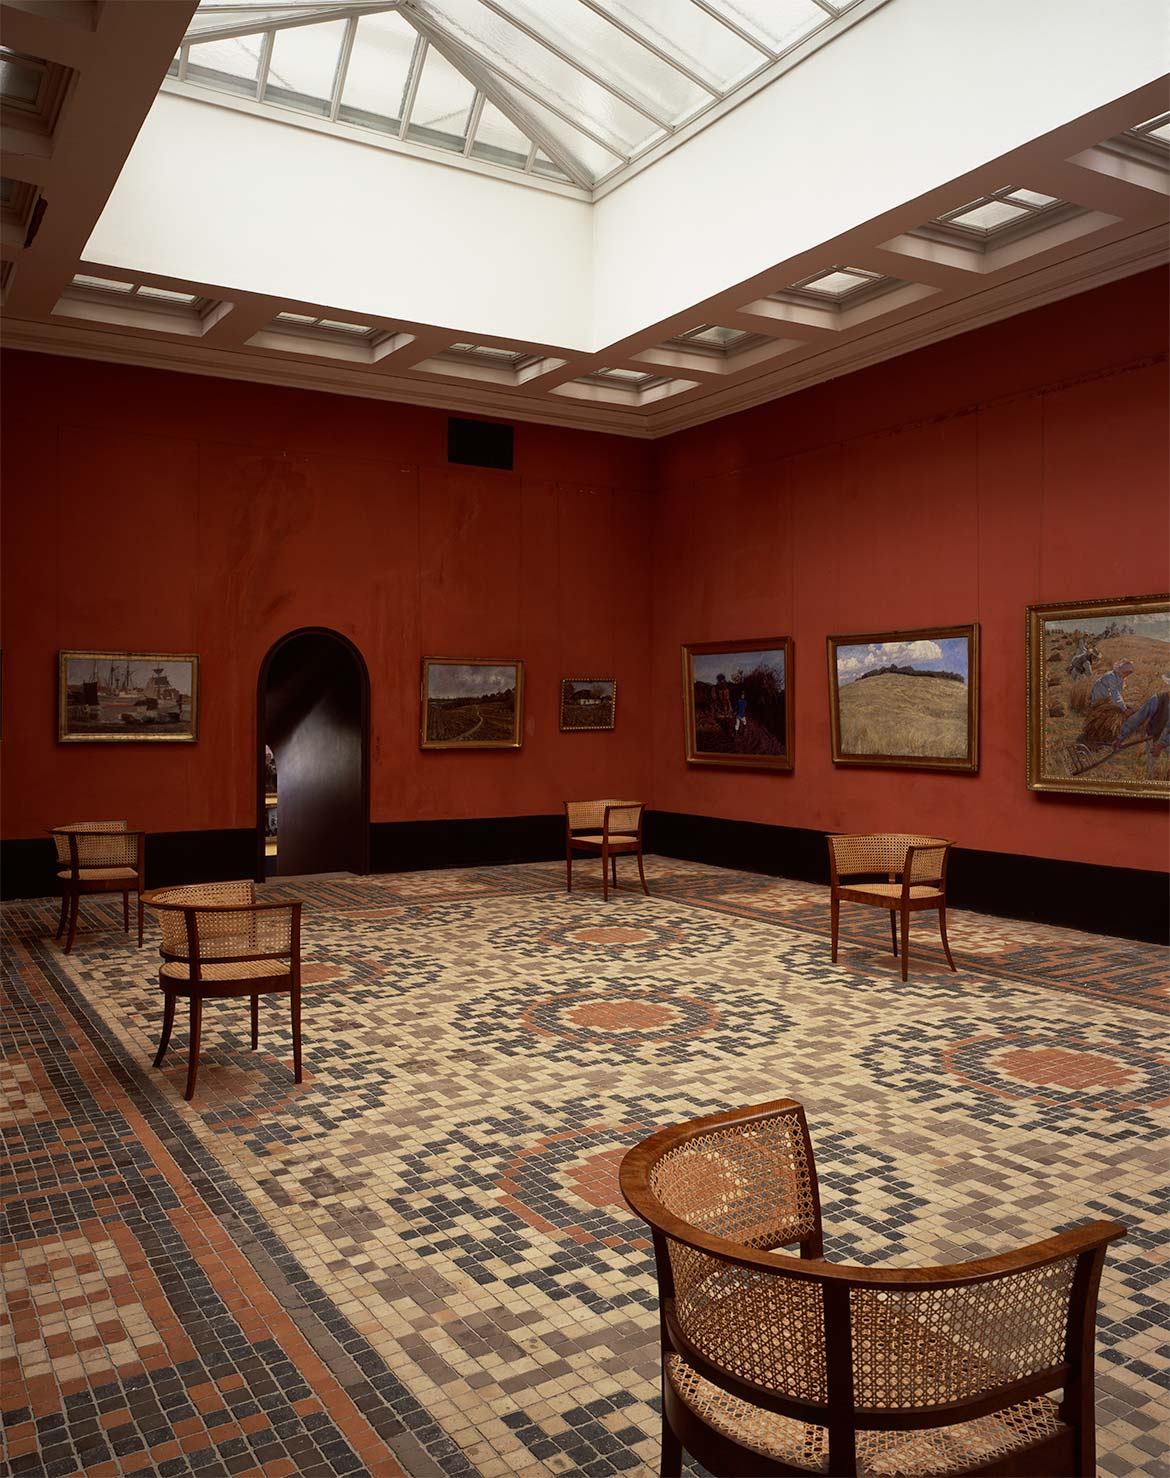 Main painting gallery with paintings by Fritz Syberg, Johannes Larsen and Jens Birkholm.